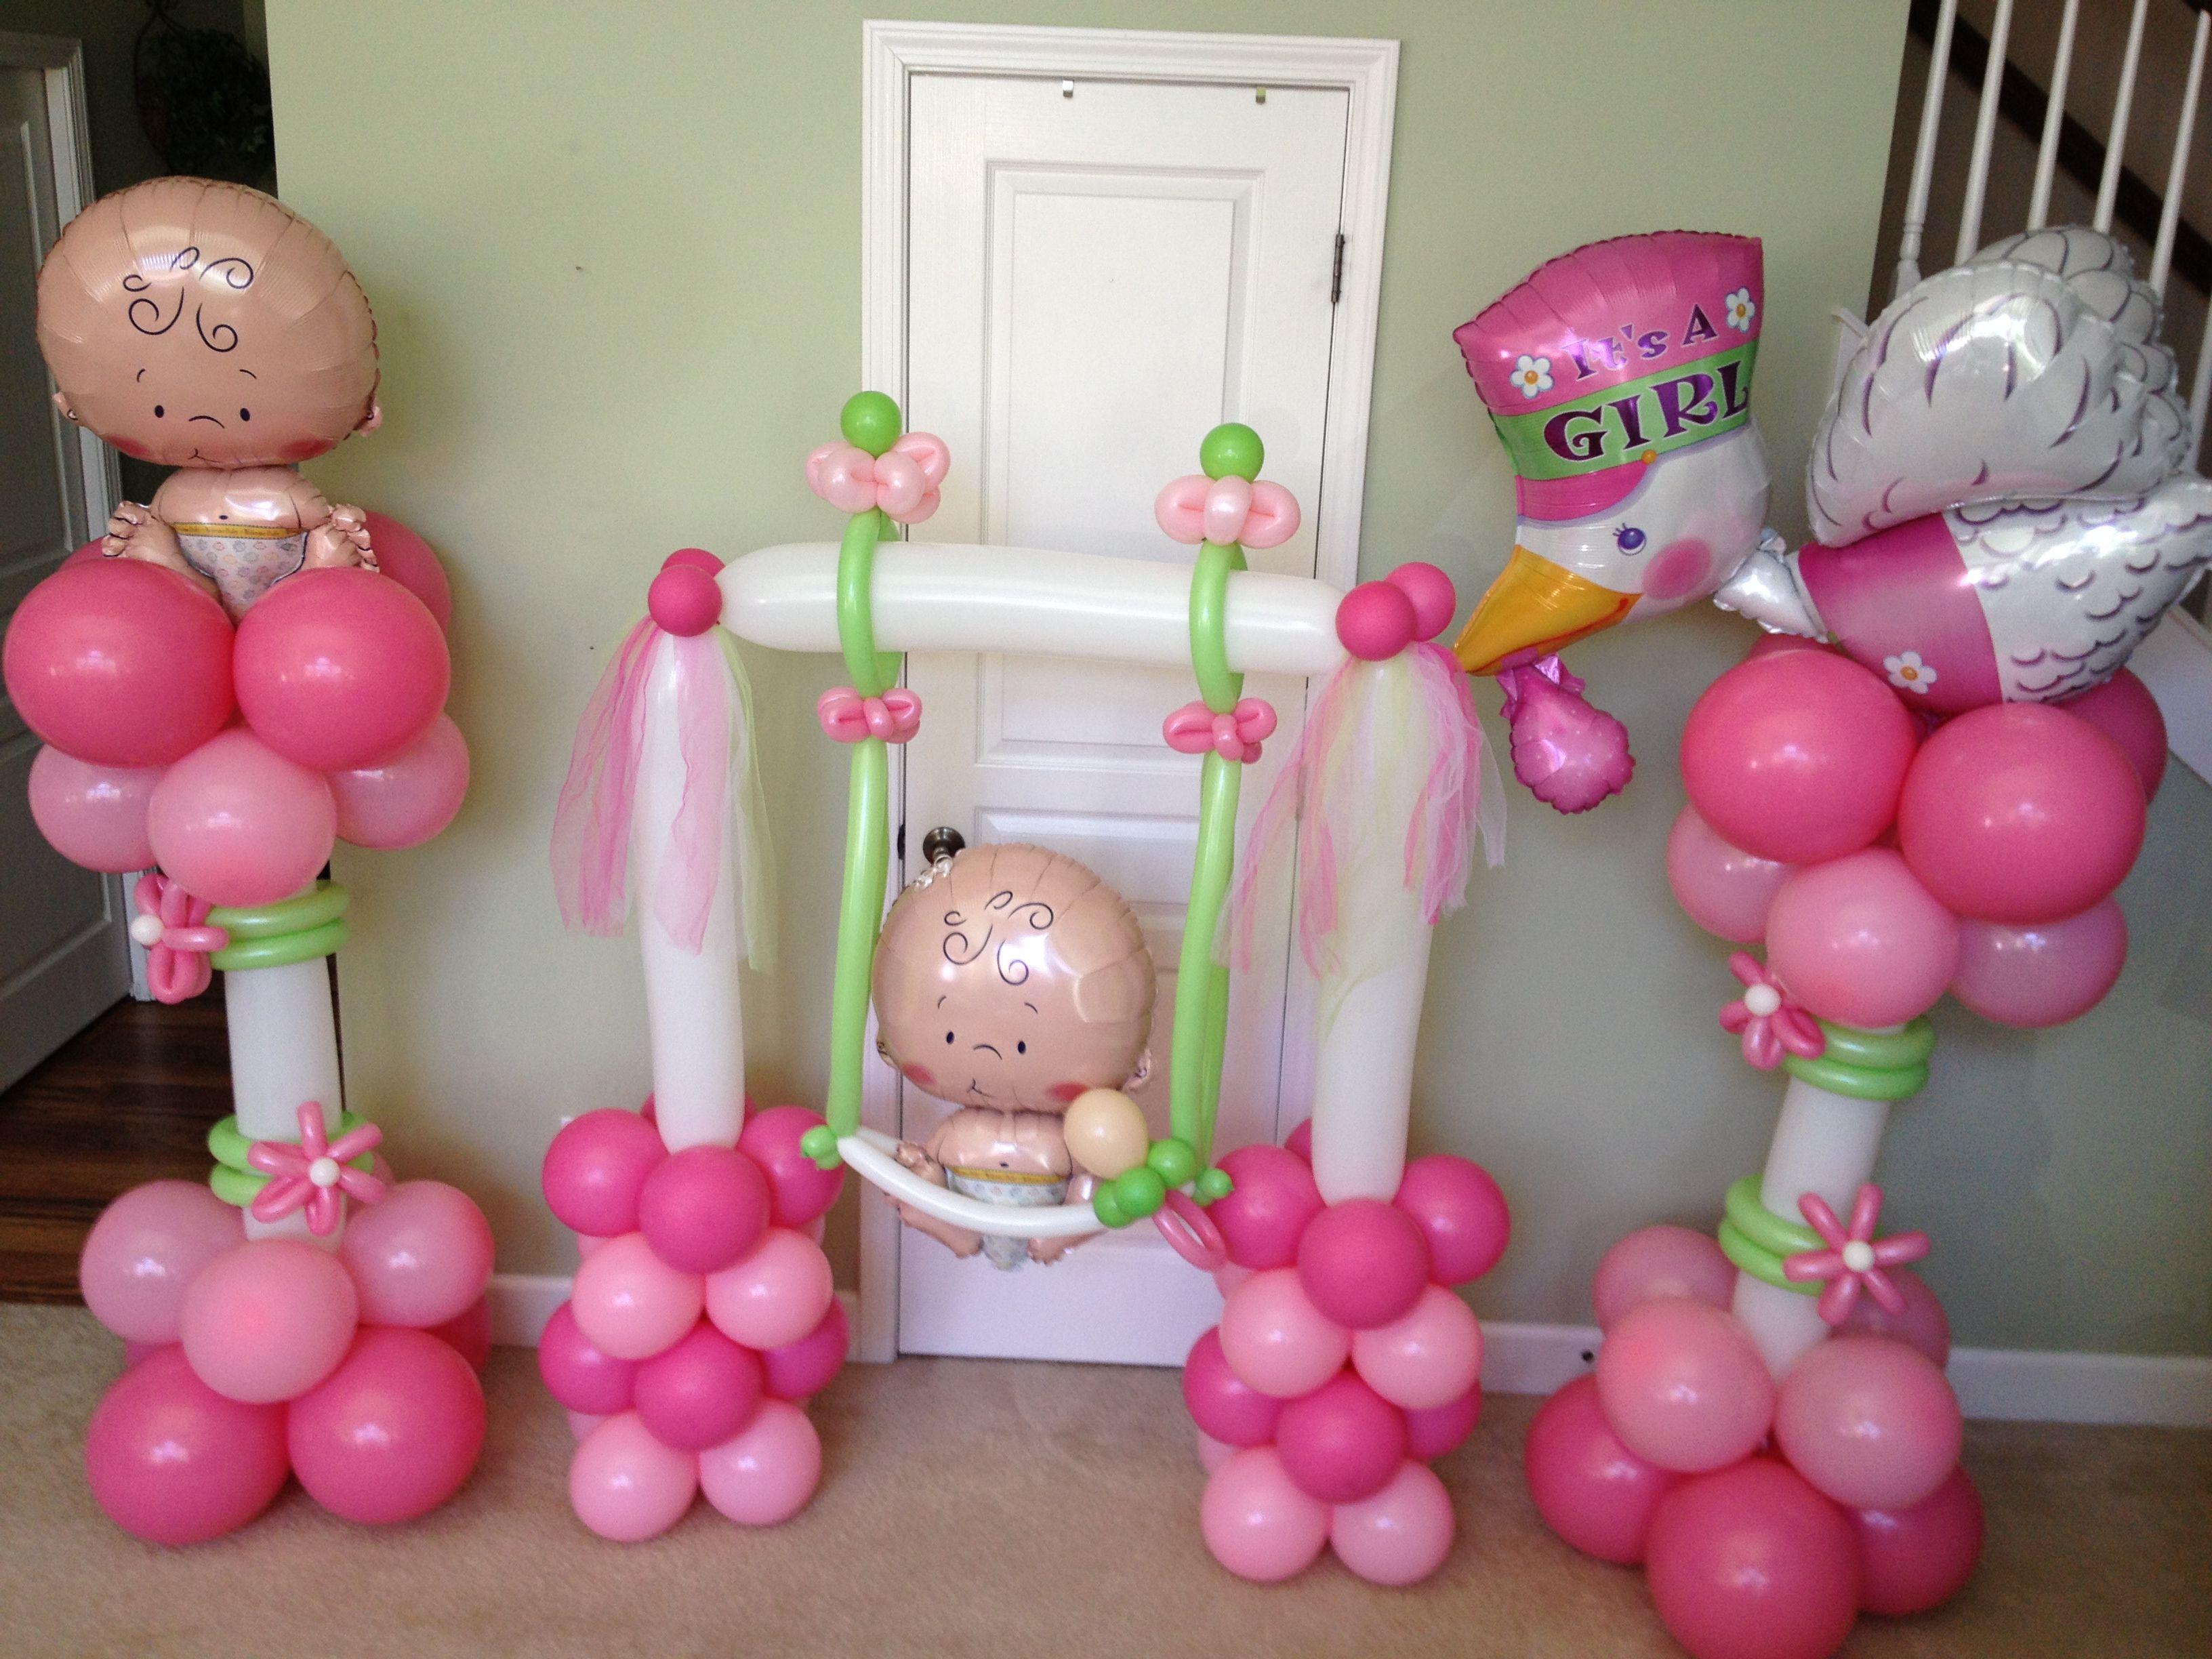 Exceptional Baby Girl Balloon Decorations